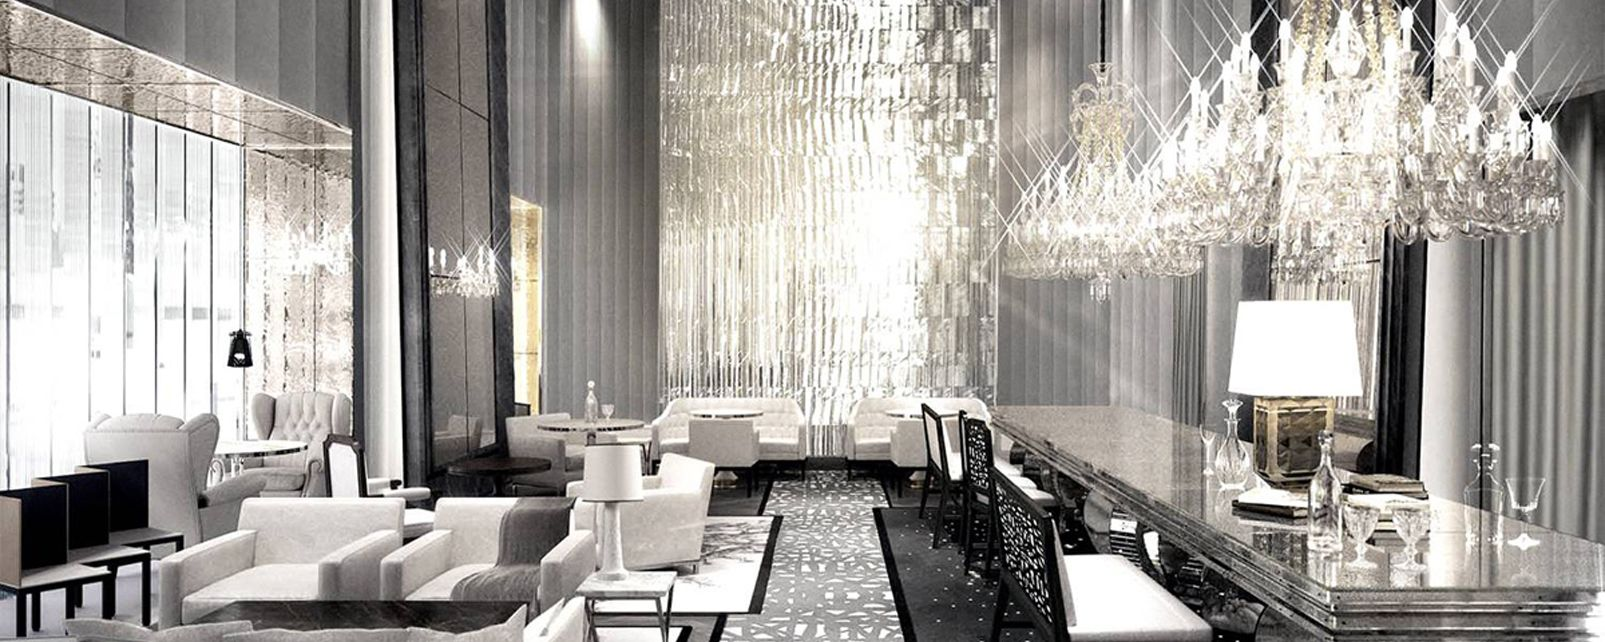 H tel baccarat new york - Baccarat hotel new york ...